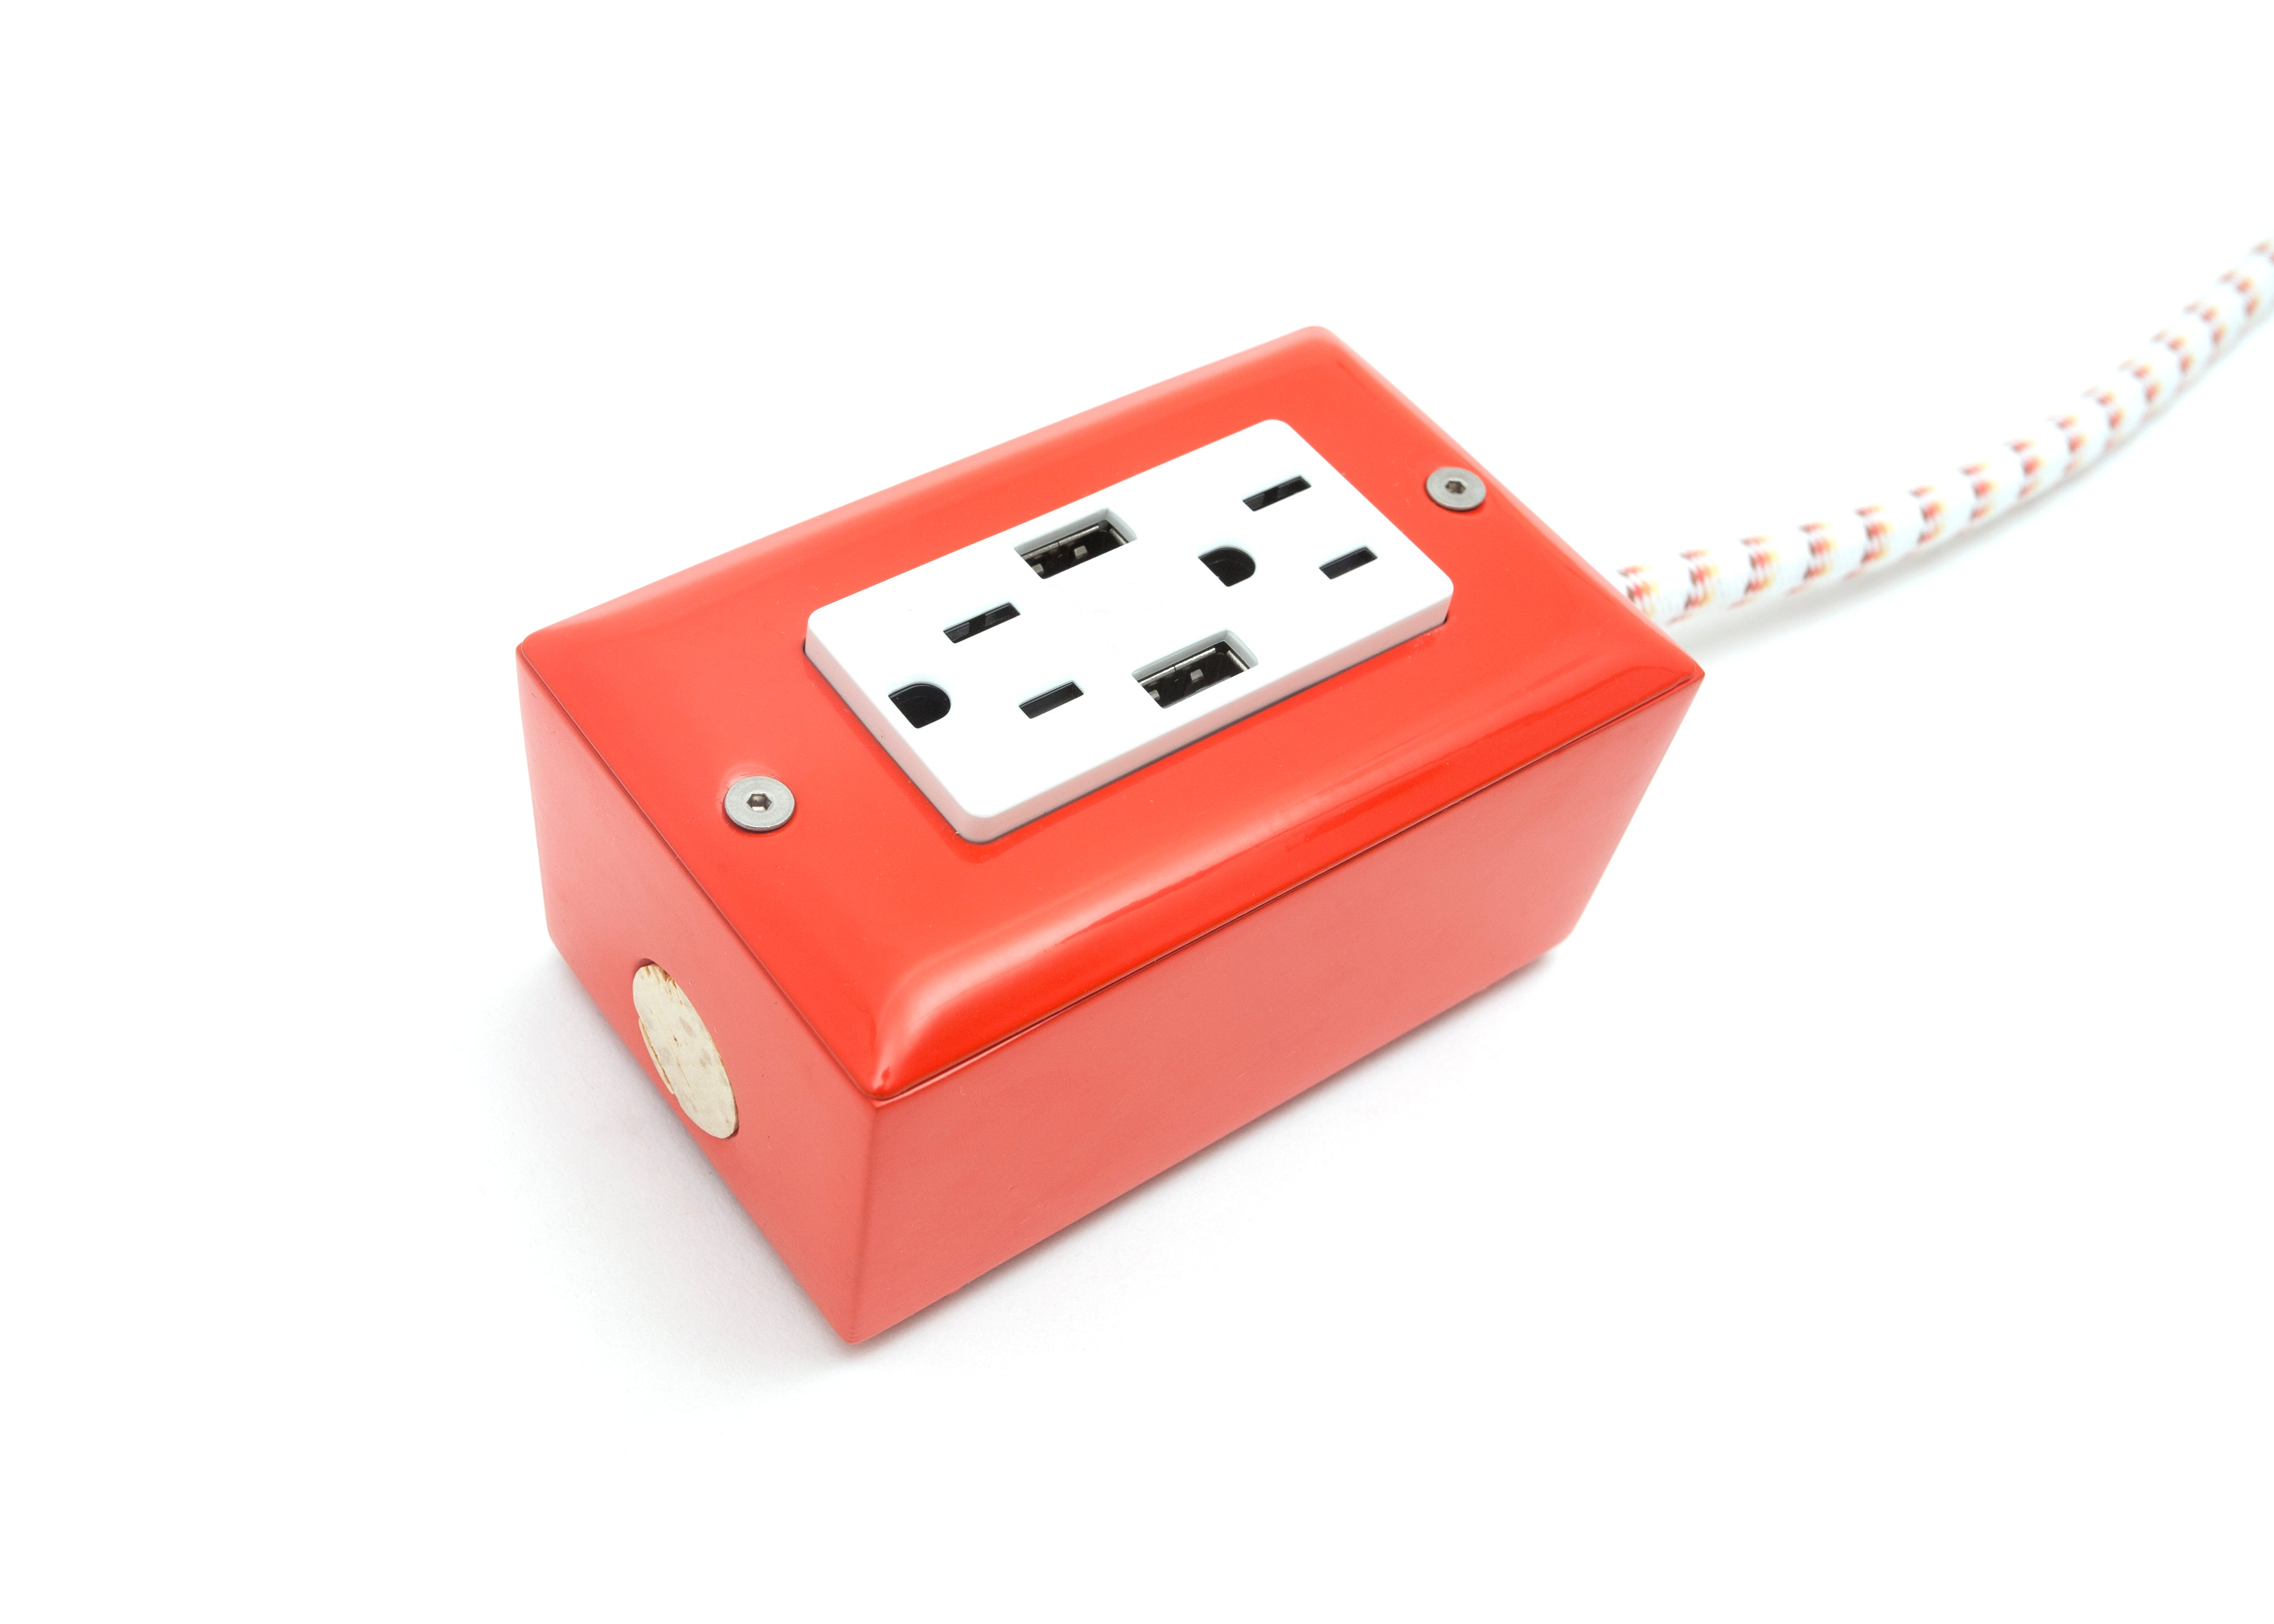 12 Ext Usb The First Smart Chip Extension Cord Conway Orange Wiring Diagram Dual Outlet Venice